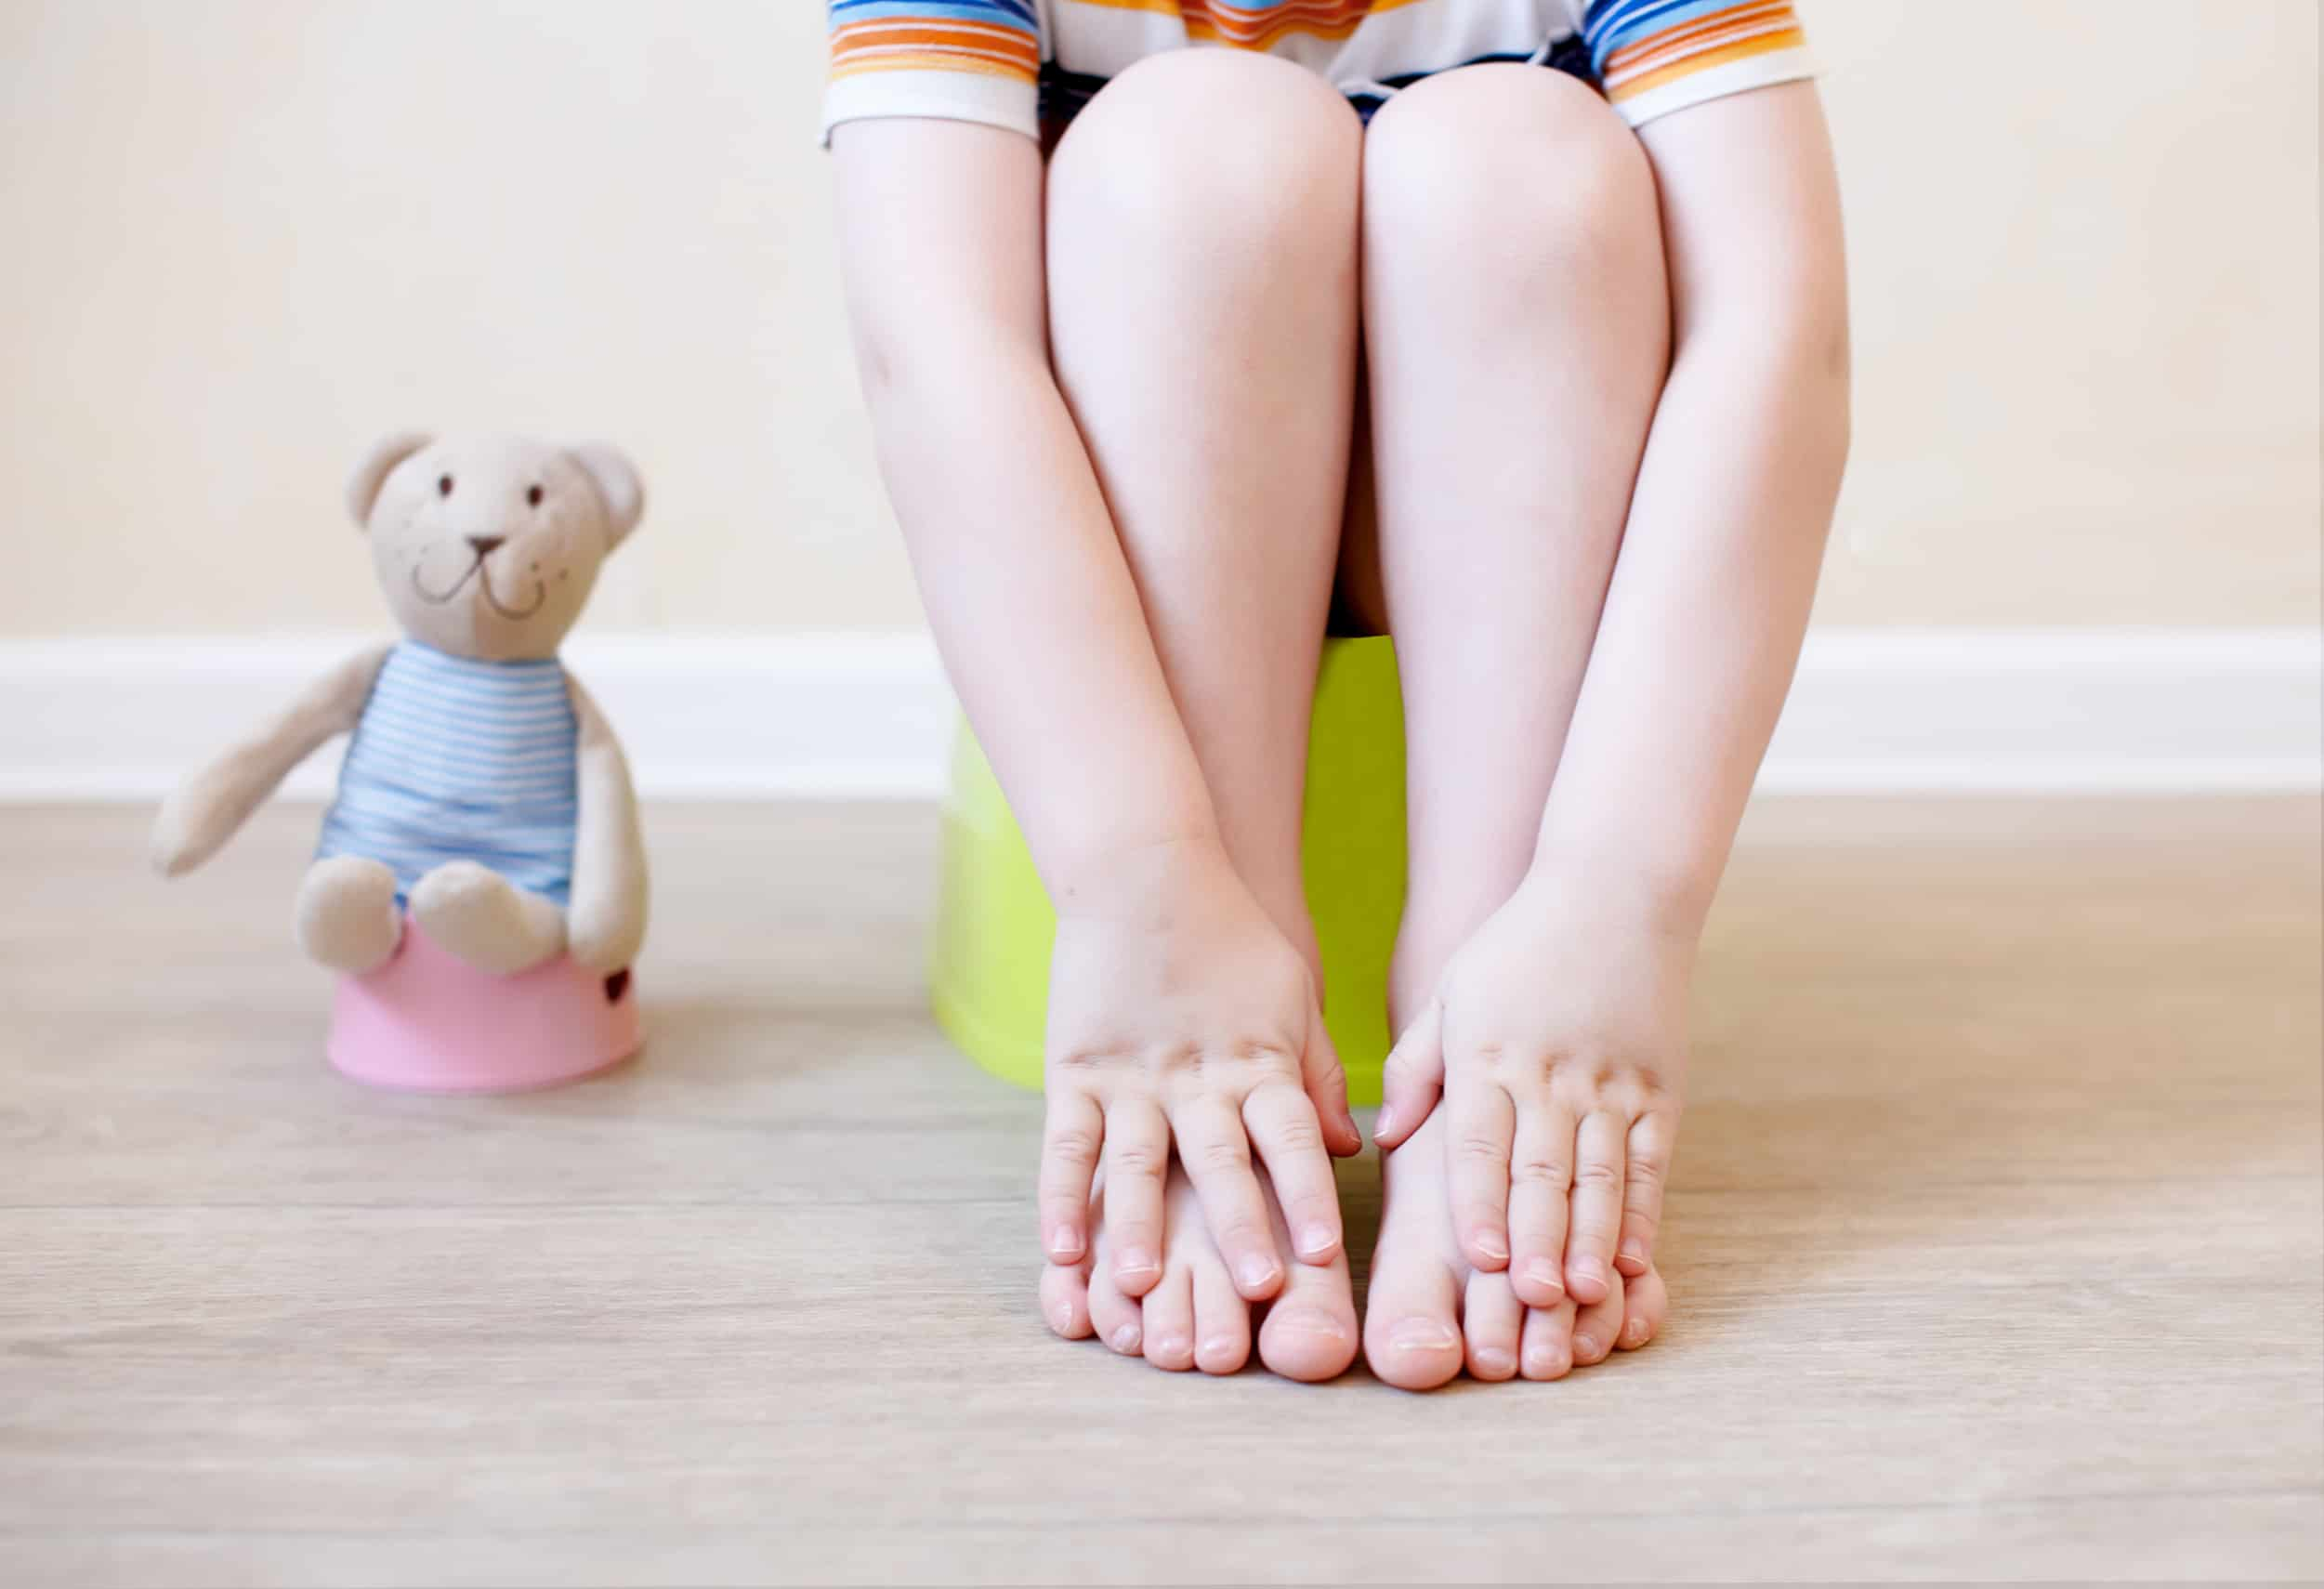 13 Best Realistic Potty Training Tips + Our Story